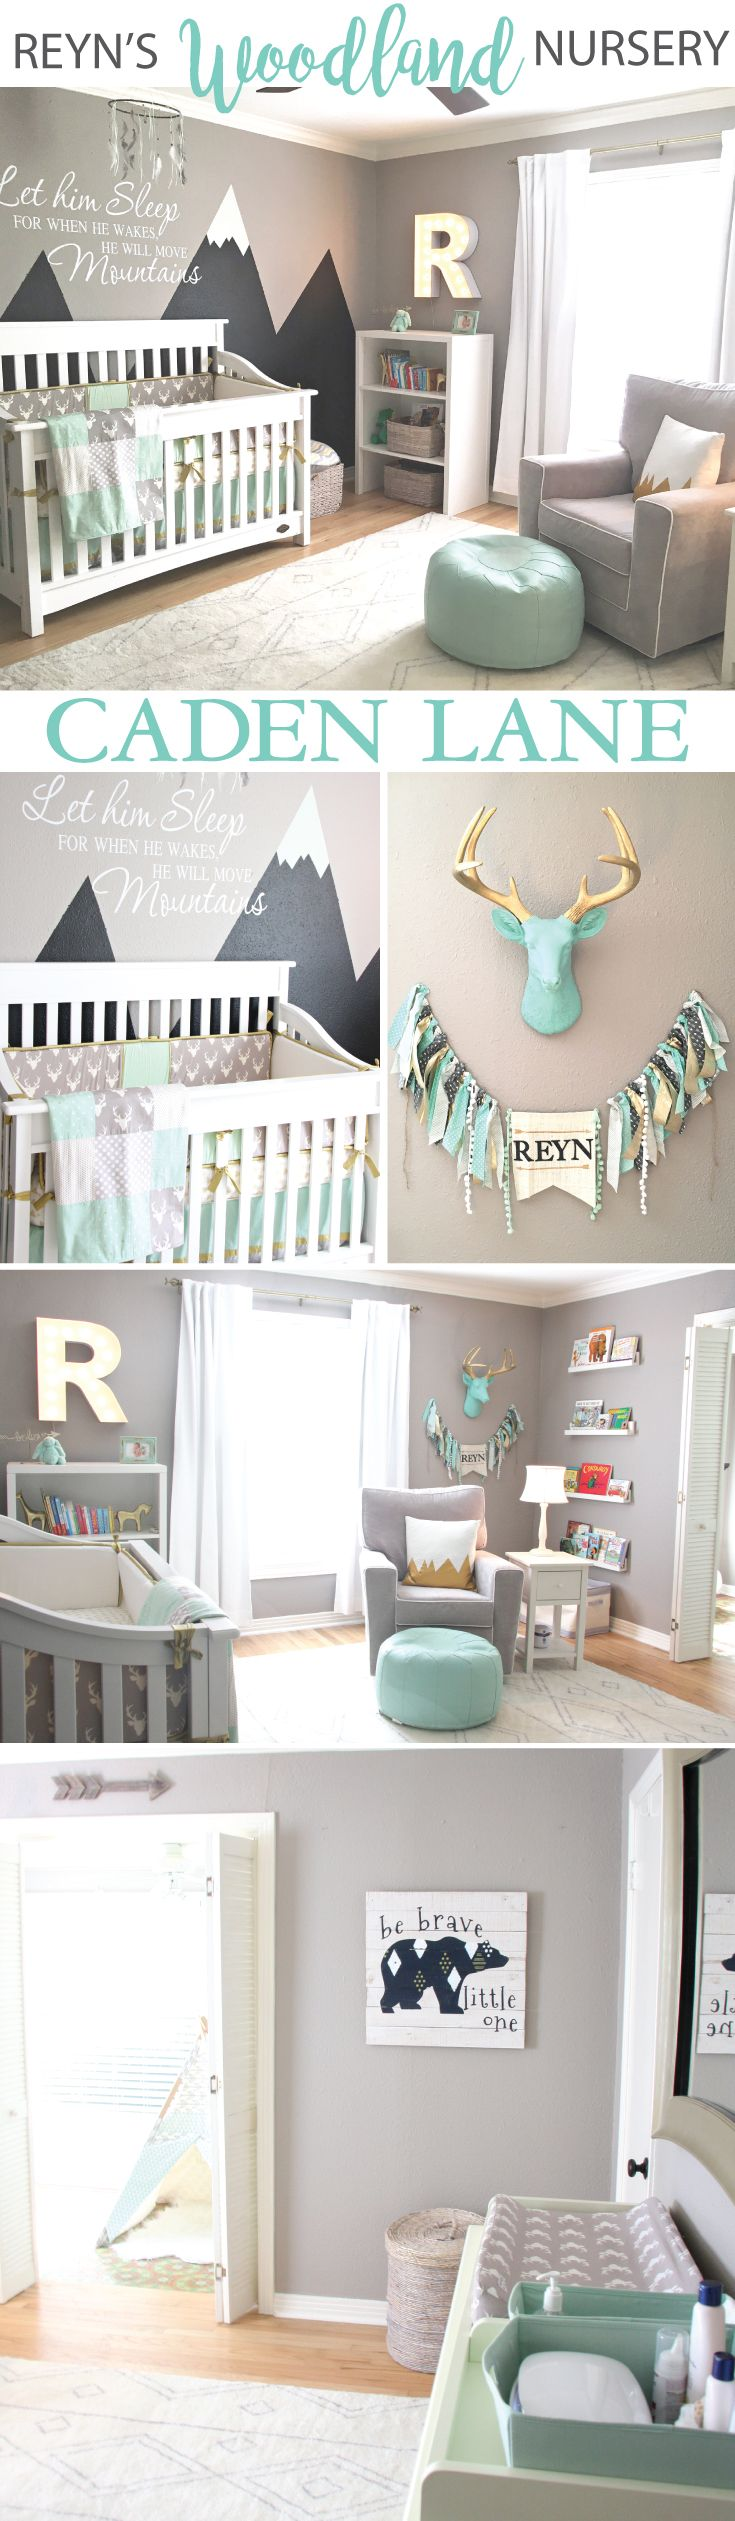 Reyns Rocky Mountain Retreat Baby Boy Bedroom IdeasBaby NurseyGrey Nursery